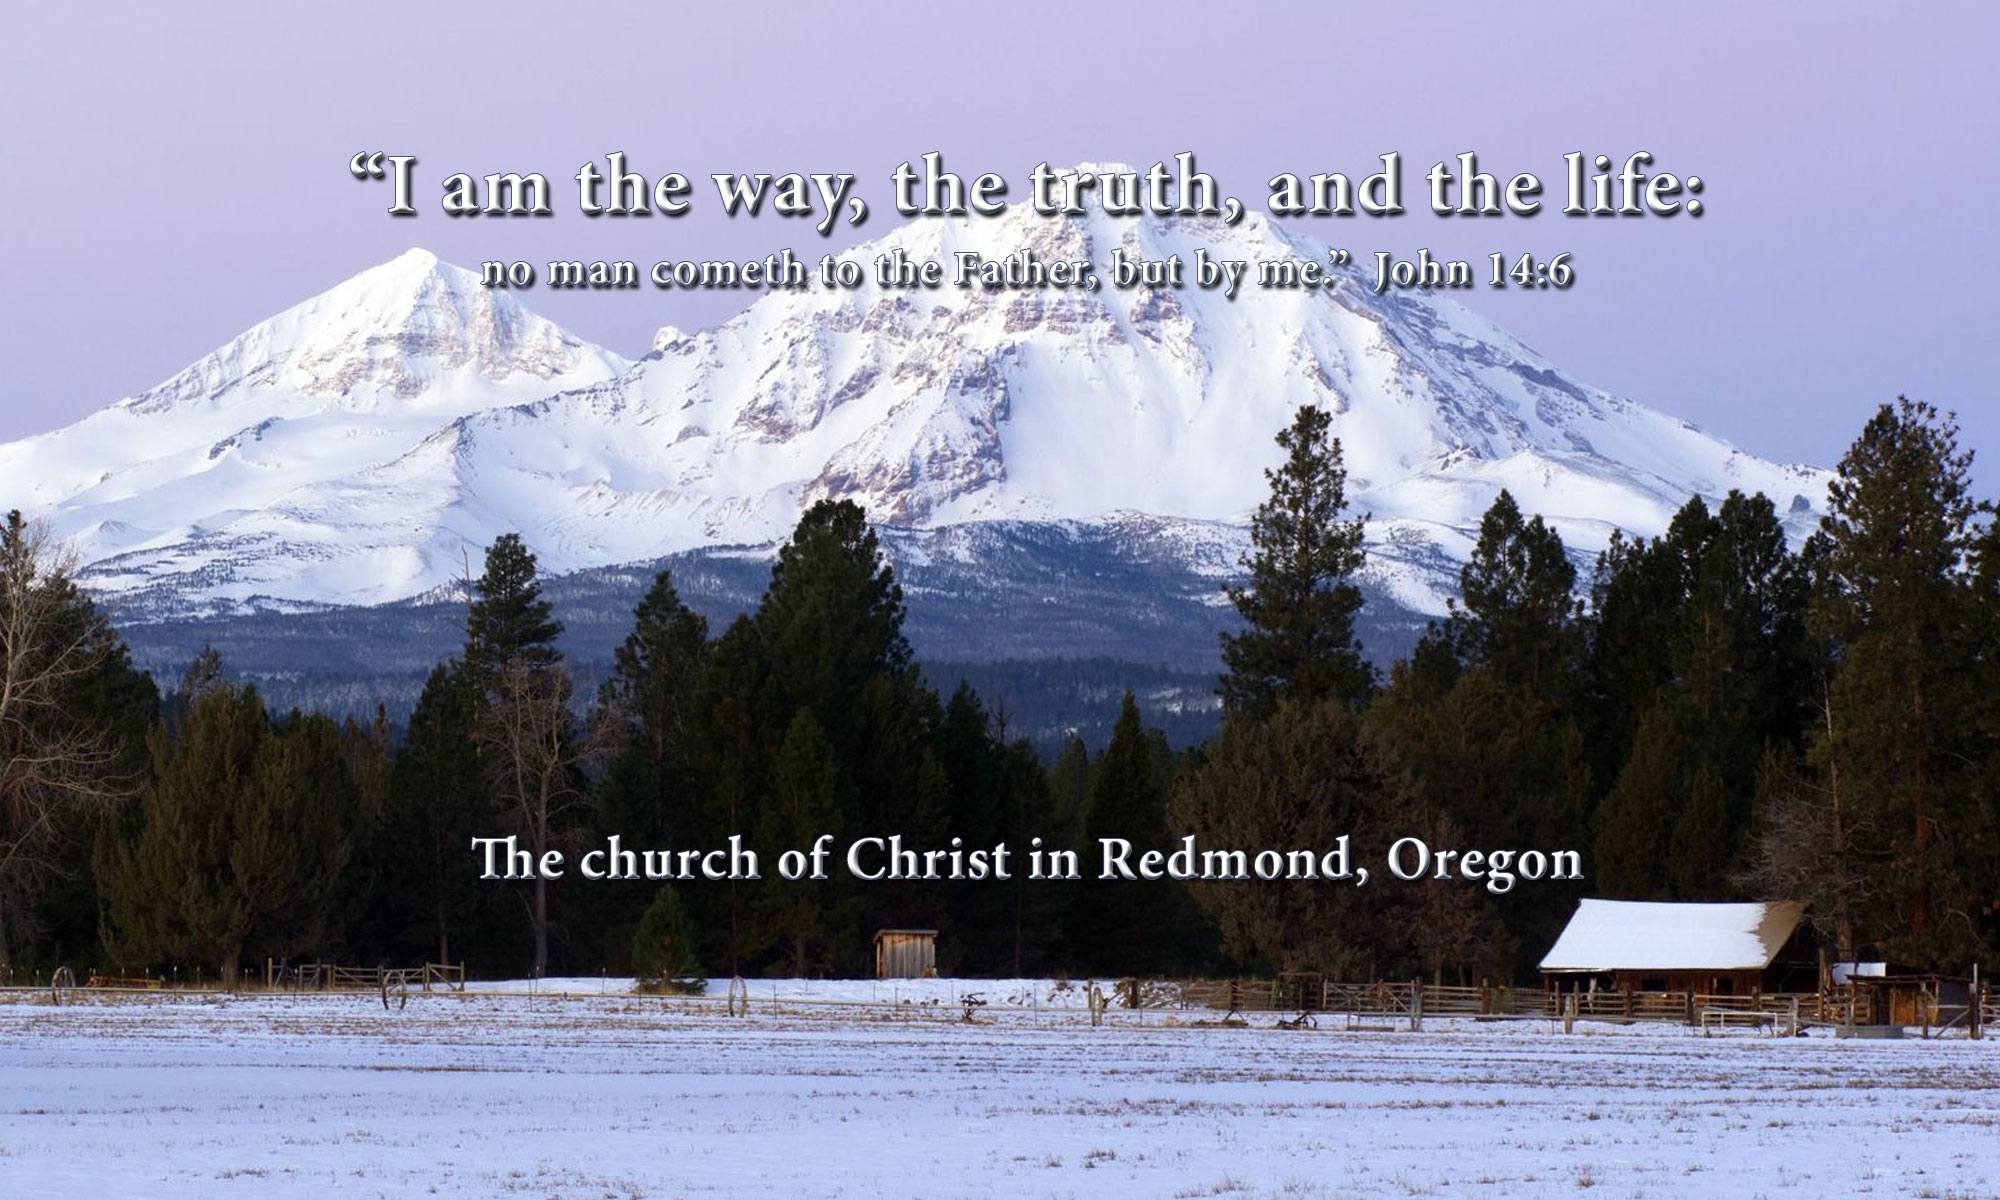 The church of Christ in Redmond, Oregon